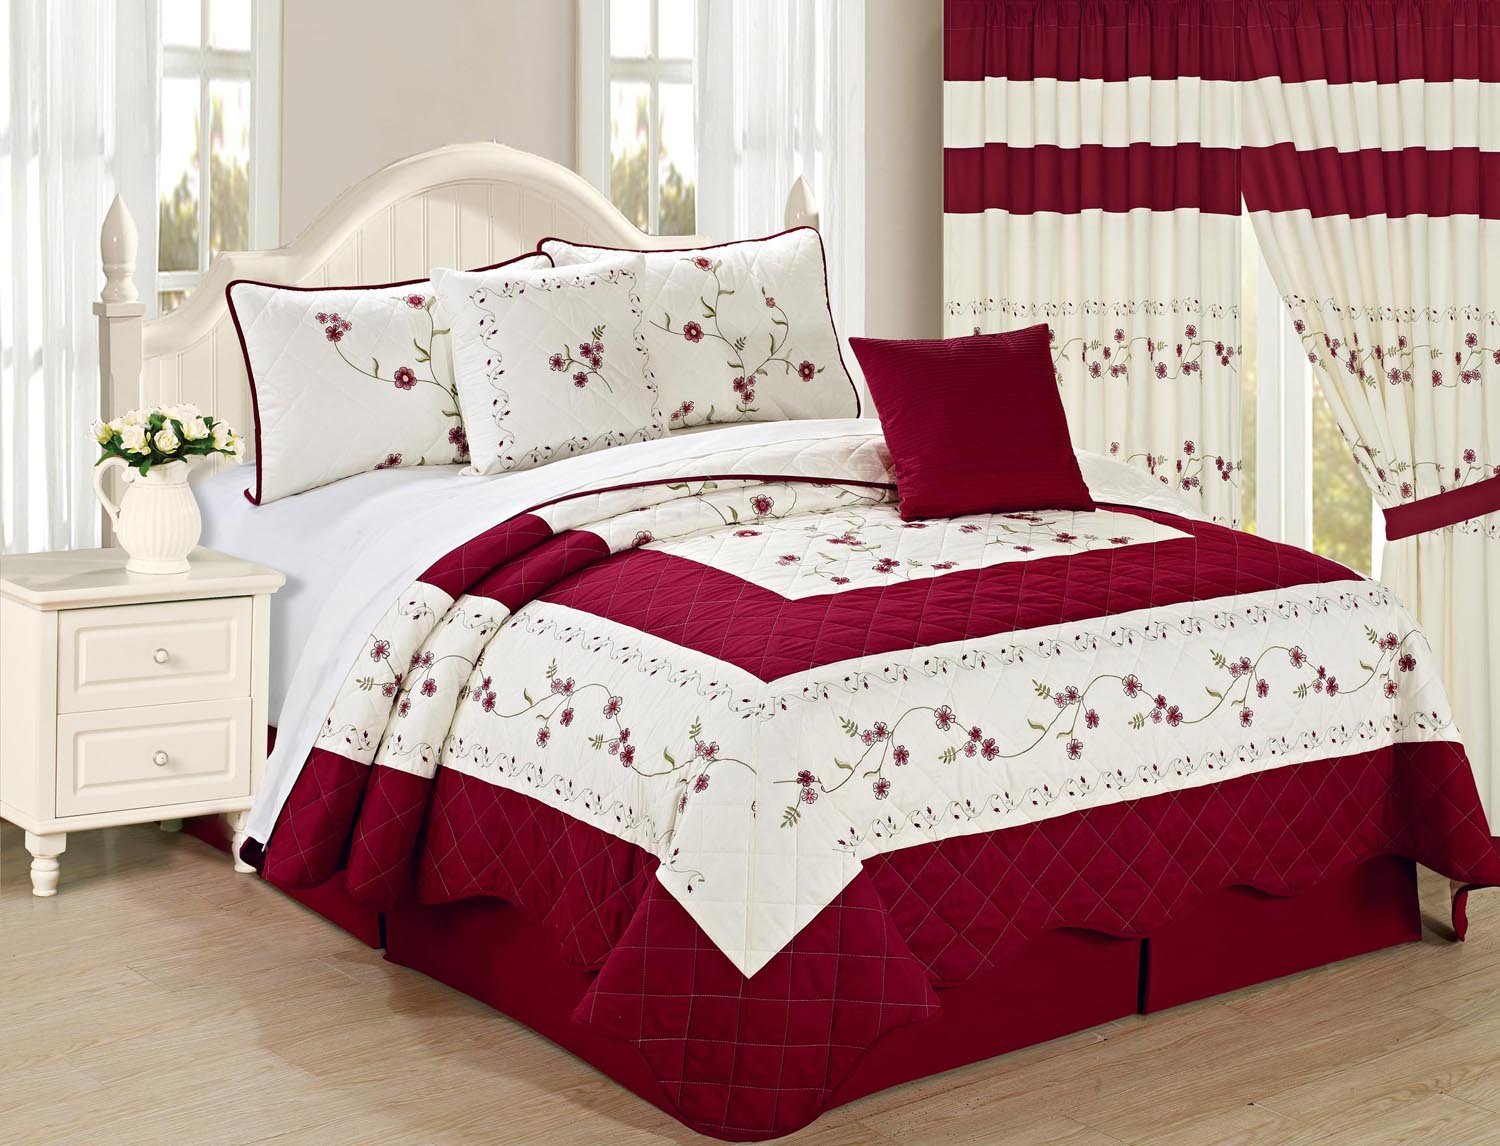 All American Collection New 6pc Embroidered Floral Bedspread/Quilt Set Queen Size, Burgundy